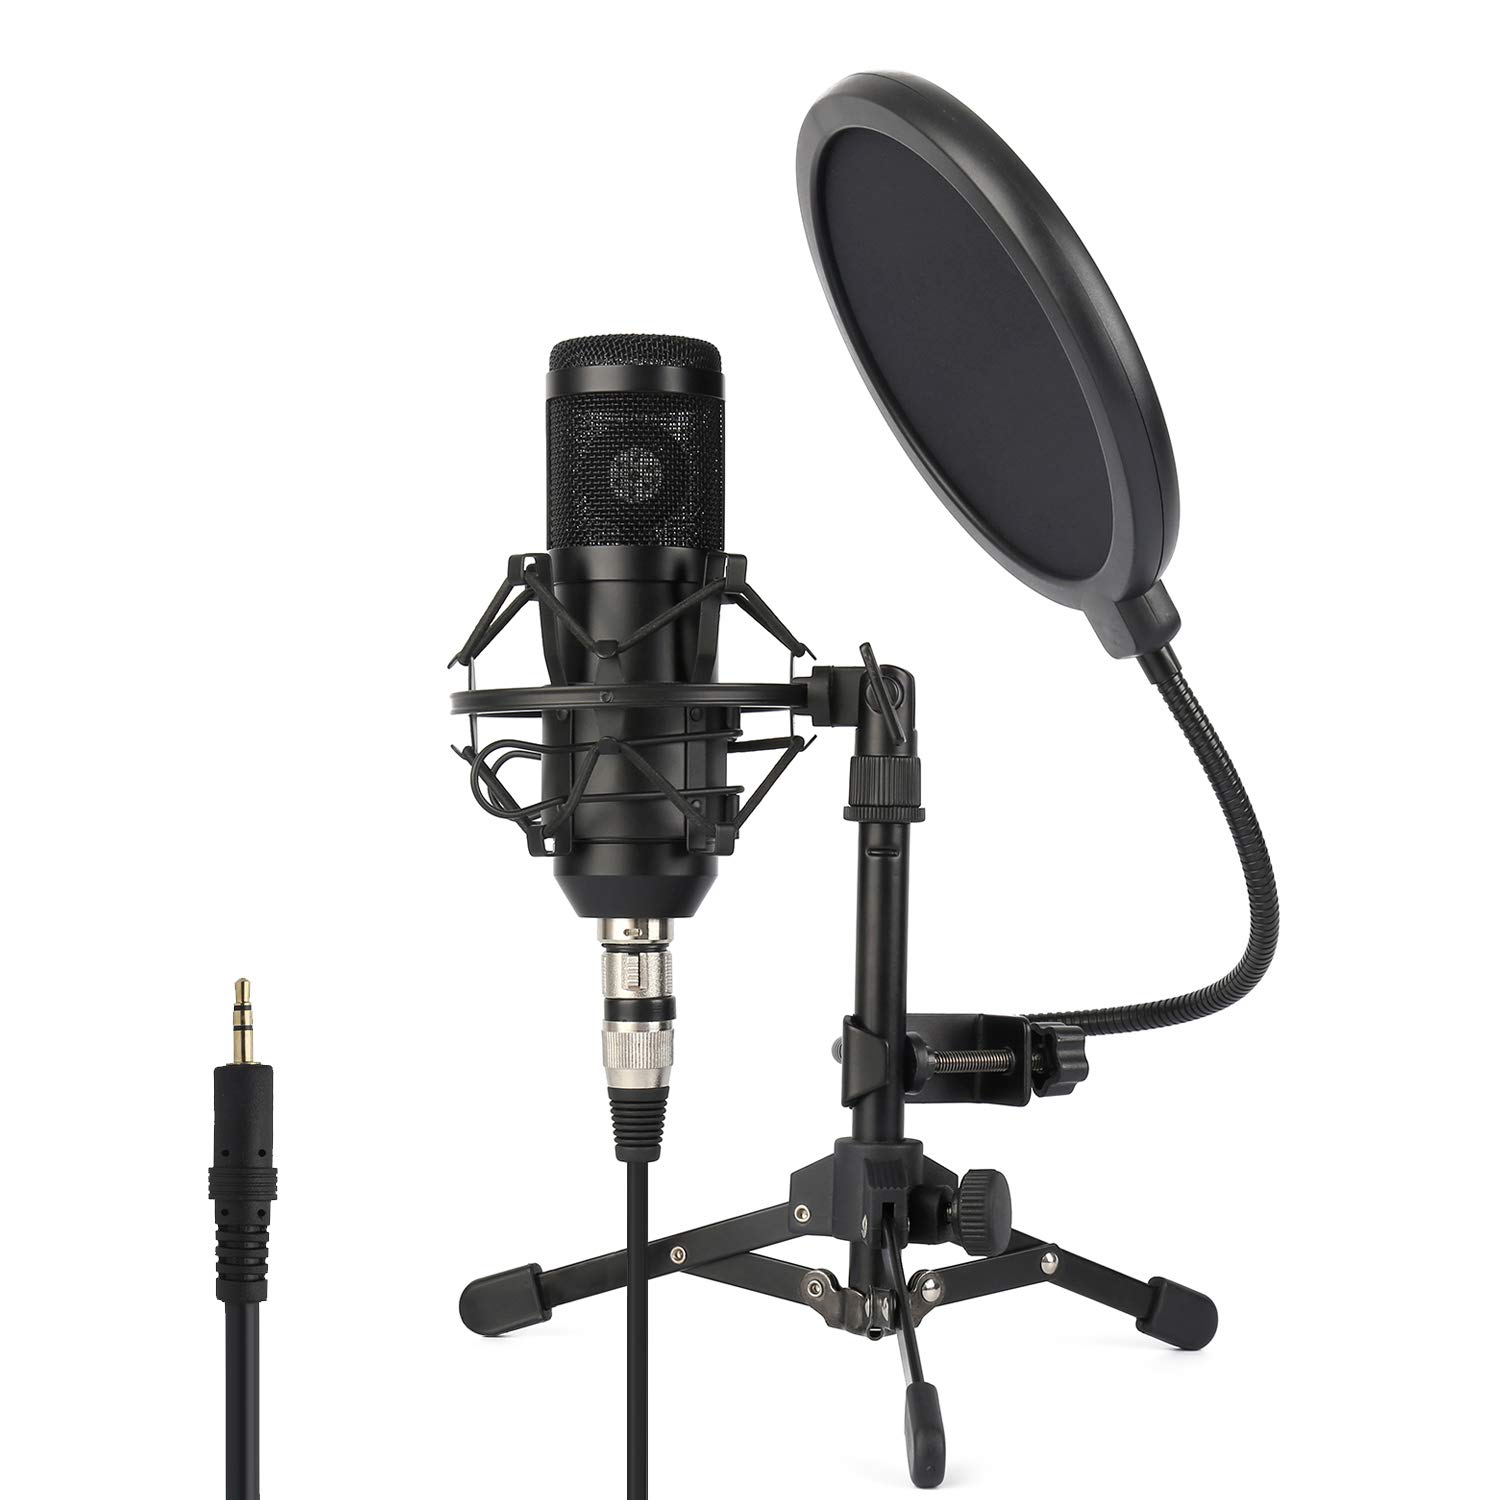 ZINGYOU Condenser Microphone ZY-801+, Professional Studio Microphone include Sound Card, Desktop Cardioid Condenser Mic, PC Recording and Broadcasting(Matte Black)